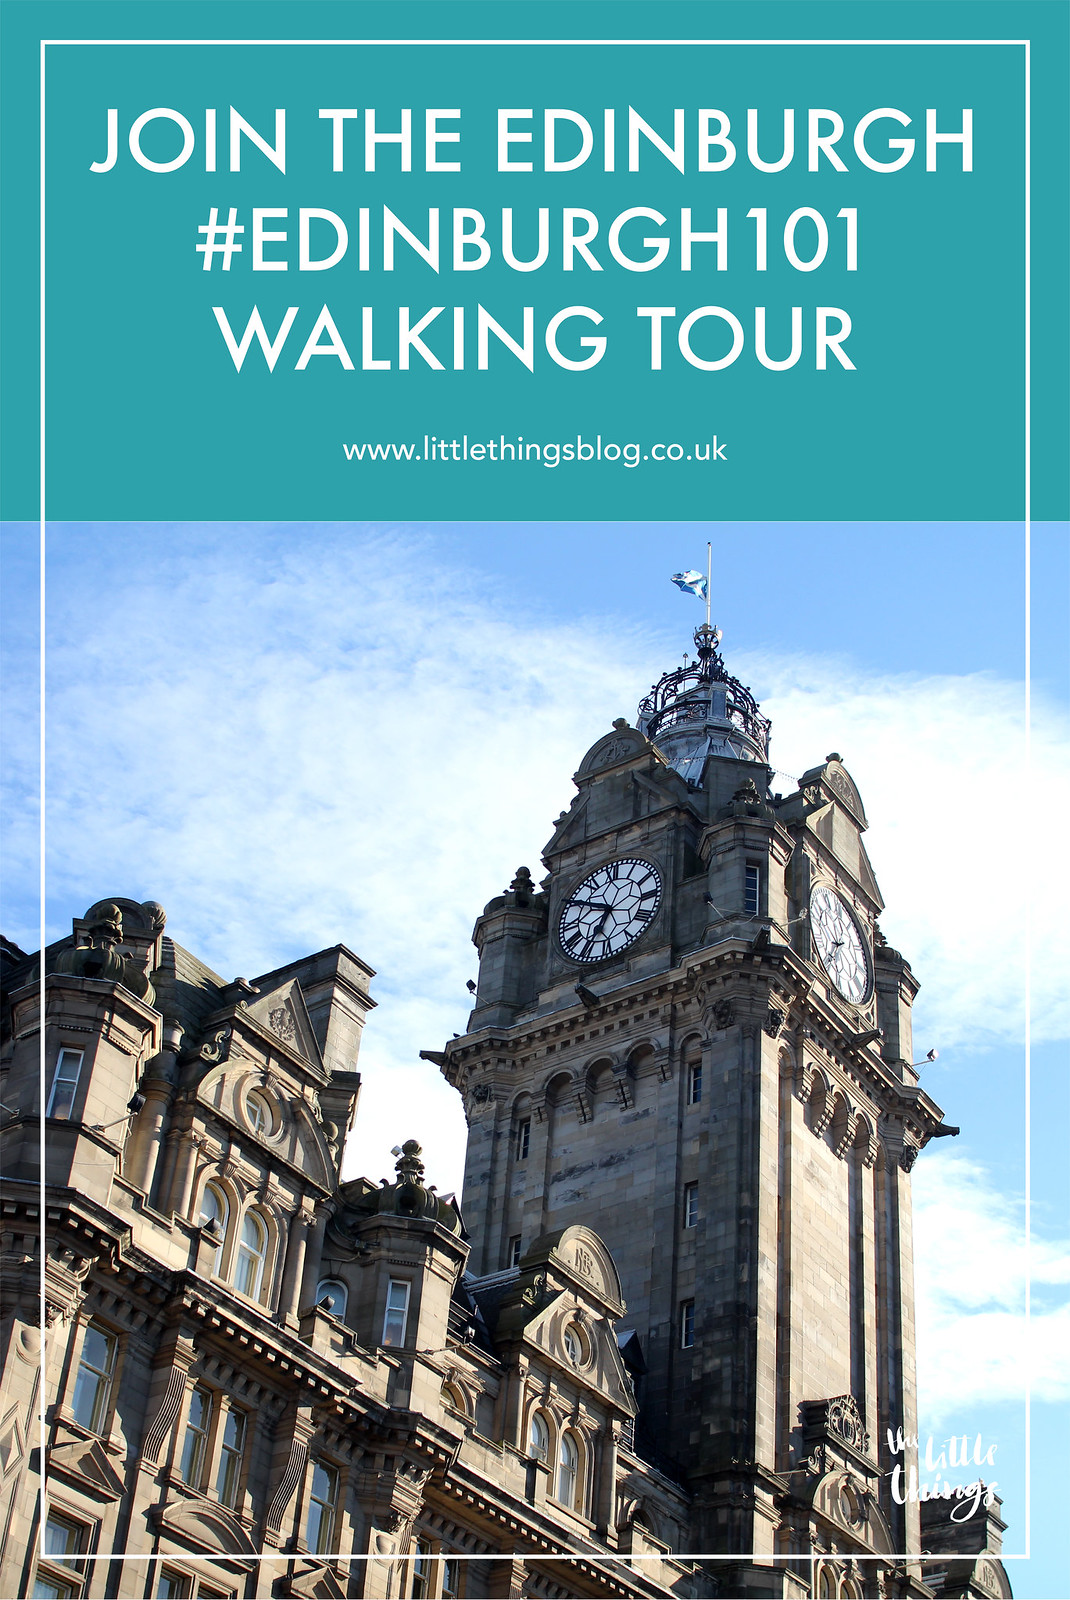 Edinburgh world heritage #edinburgh101 walking tour travel blogger uk